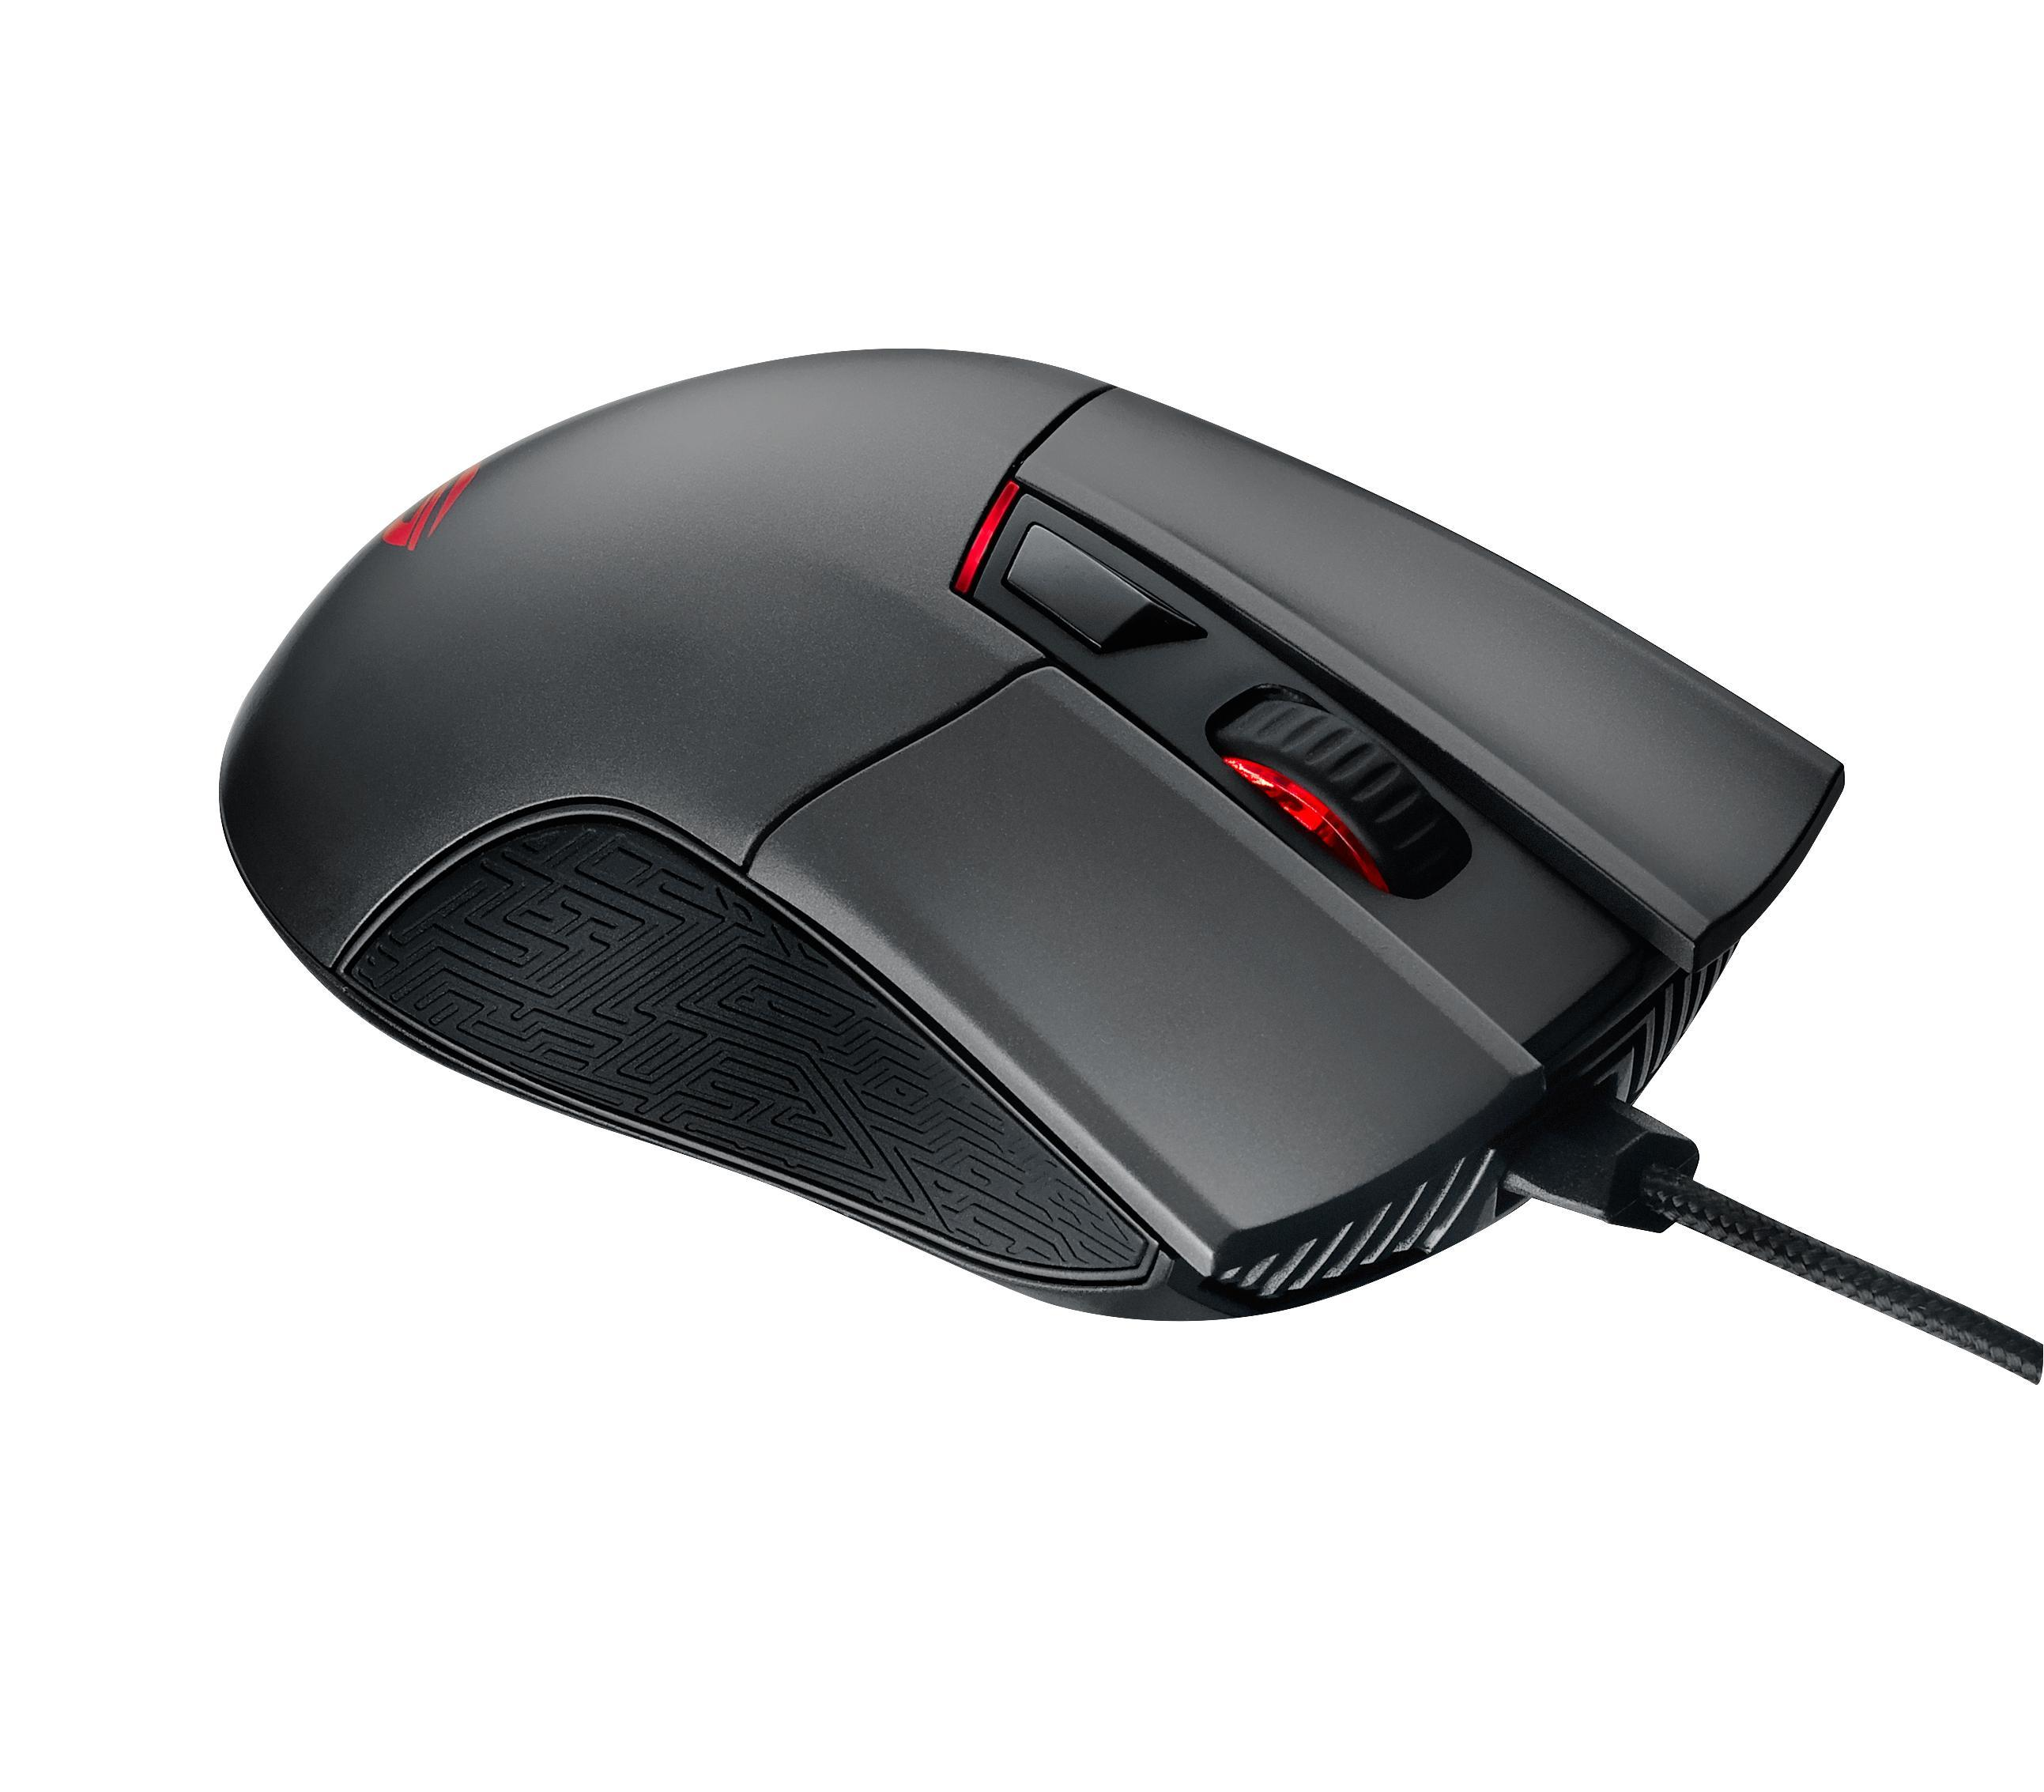 Amazon.com: ASUS Gaming Mouse (ROG Gladius): Computers